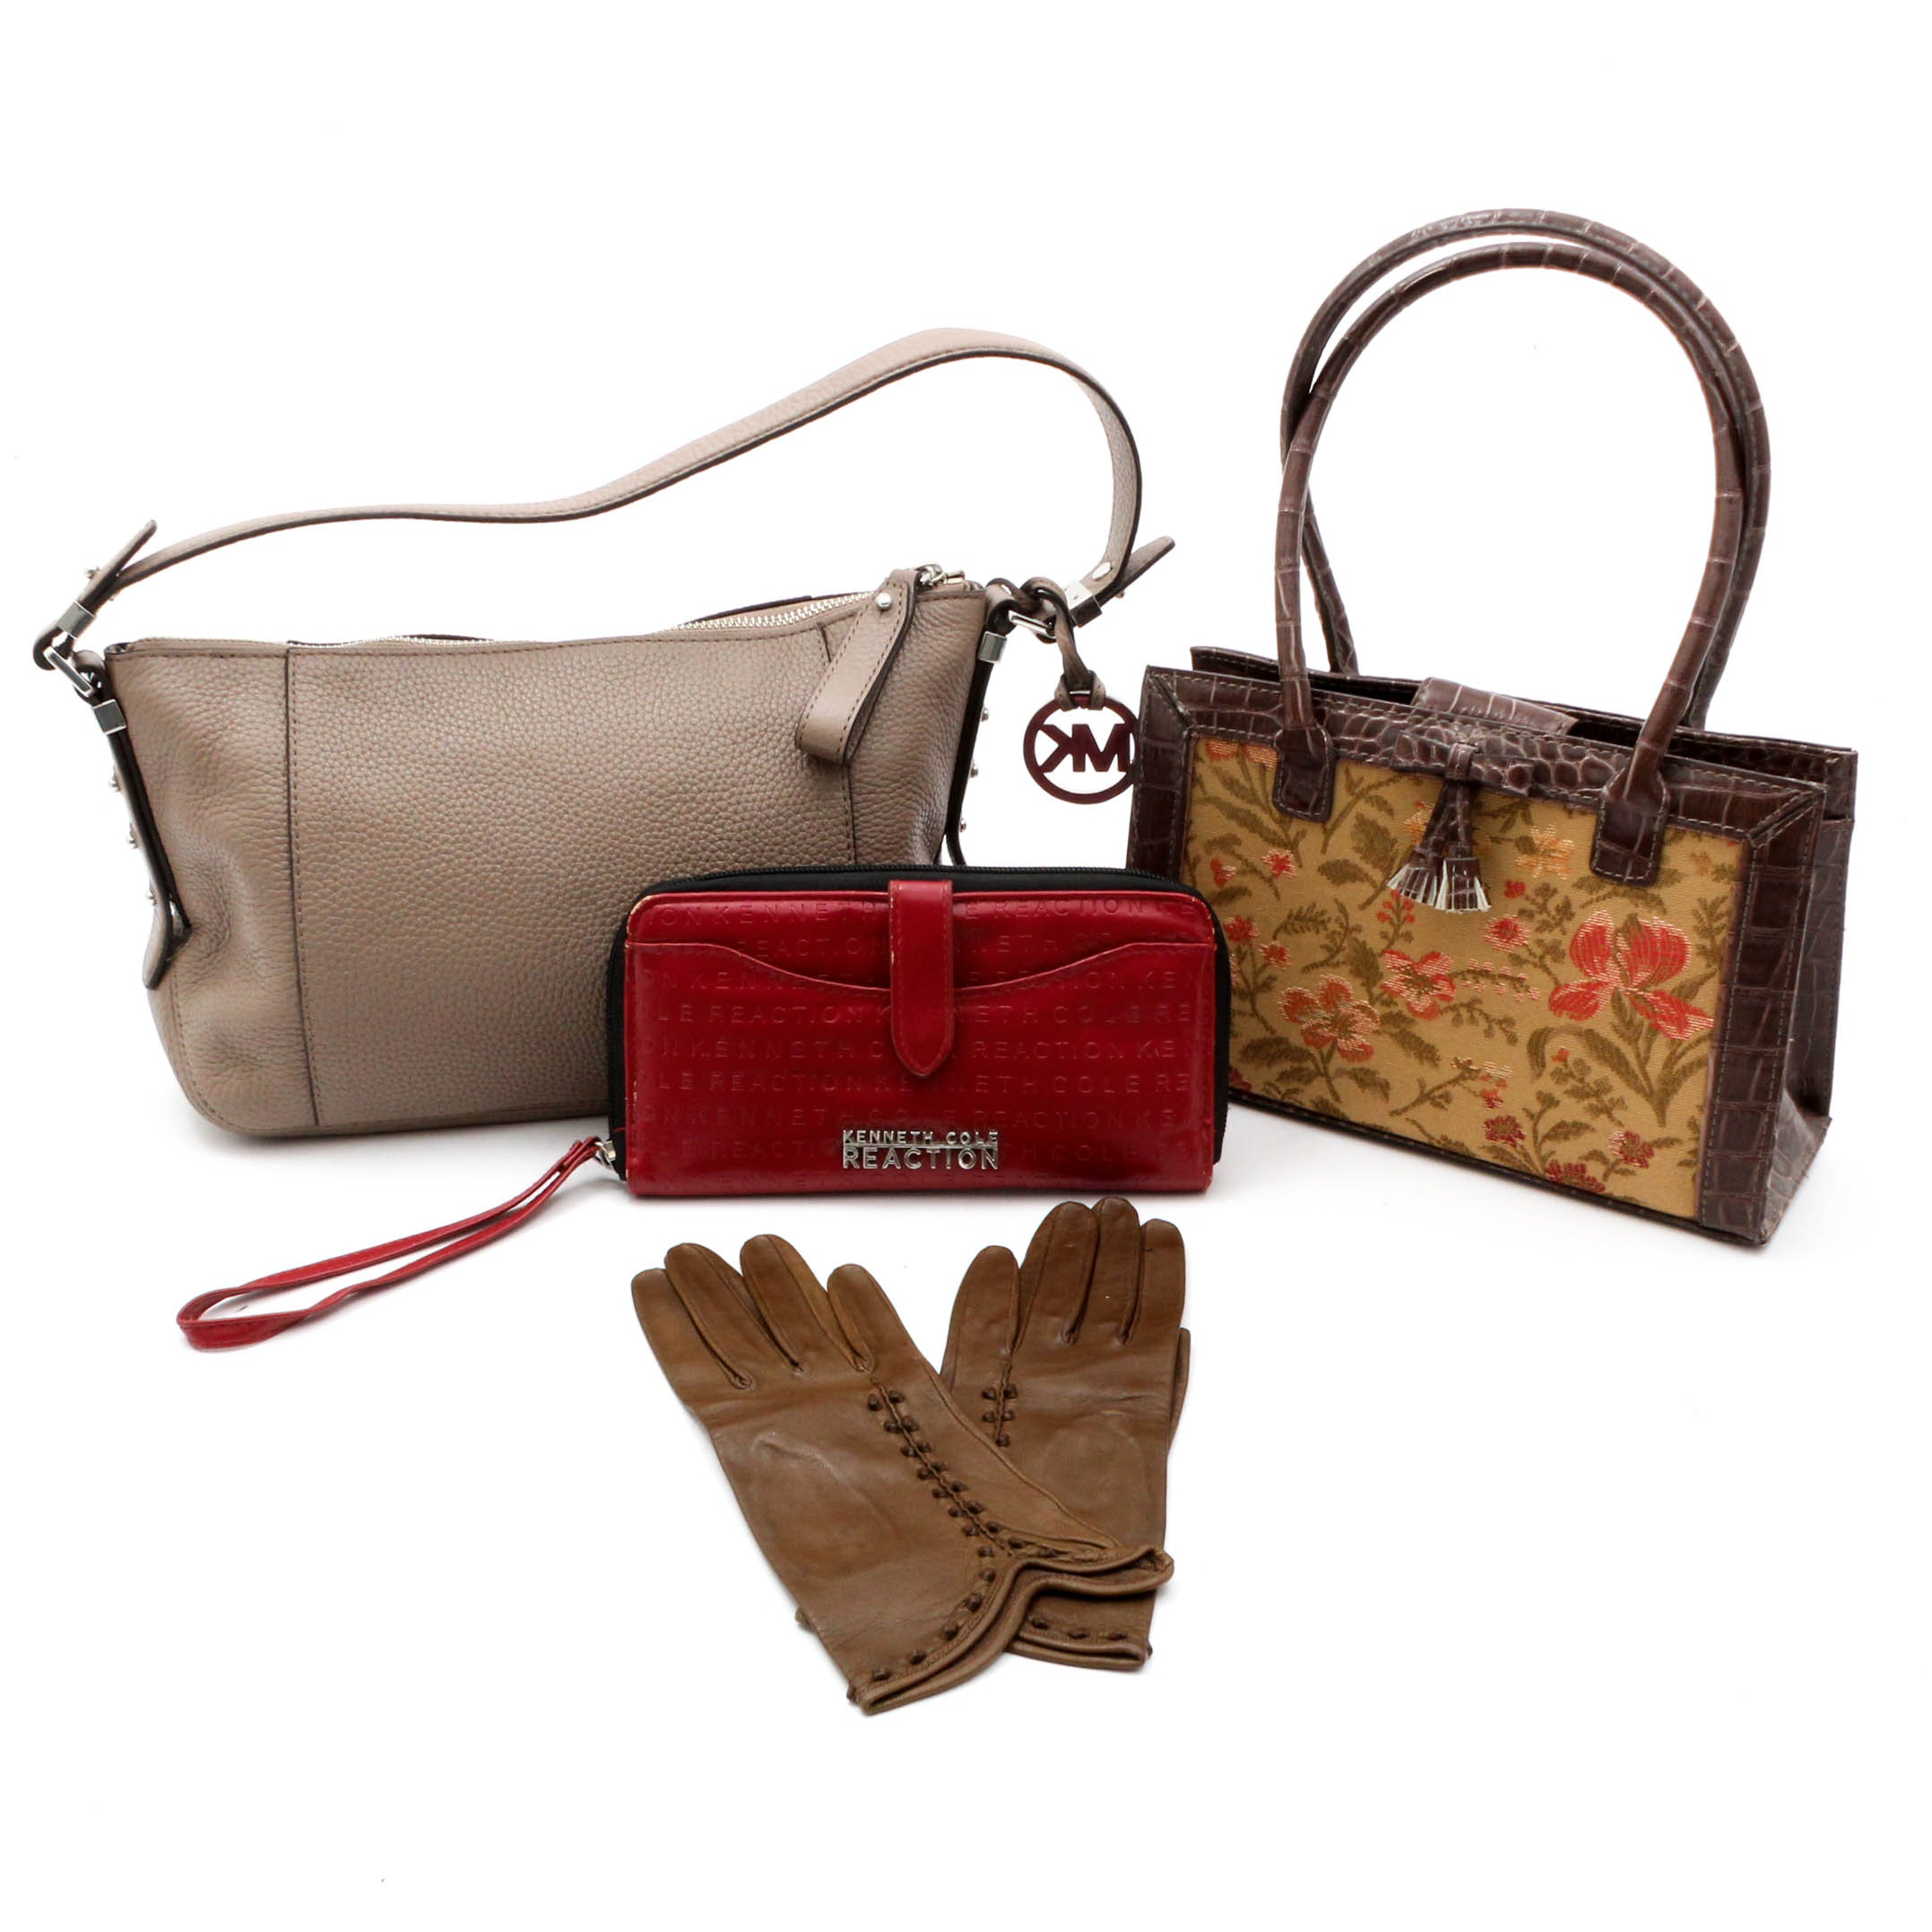 Leather Handbags and Gloves featuring MICHAEL Michael Kors and Kenneth Cole